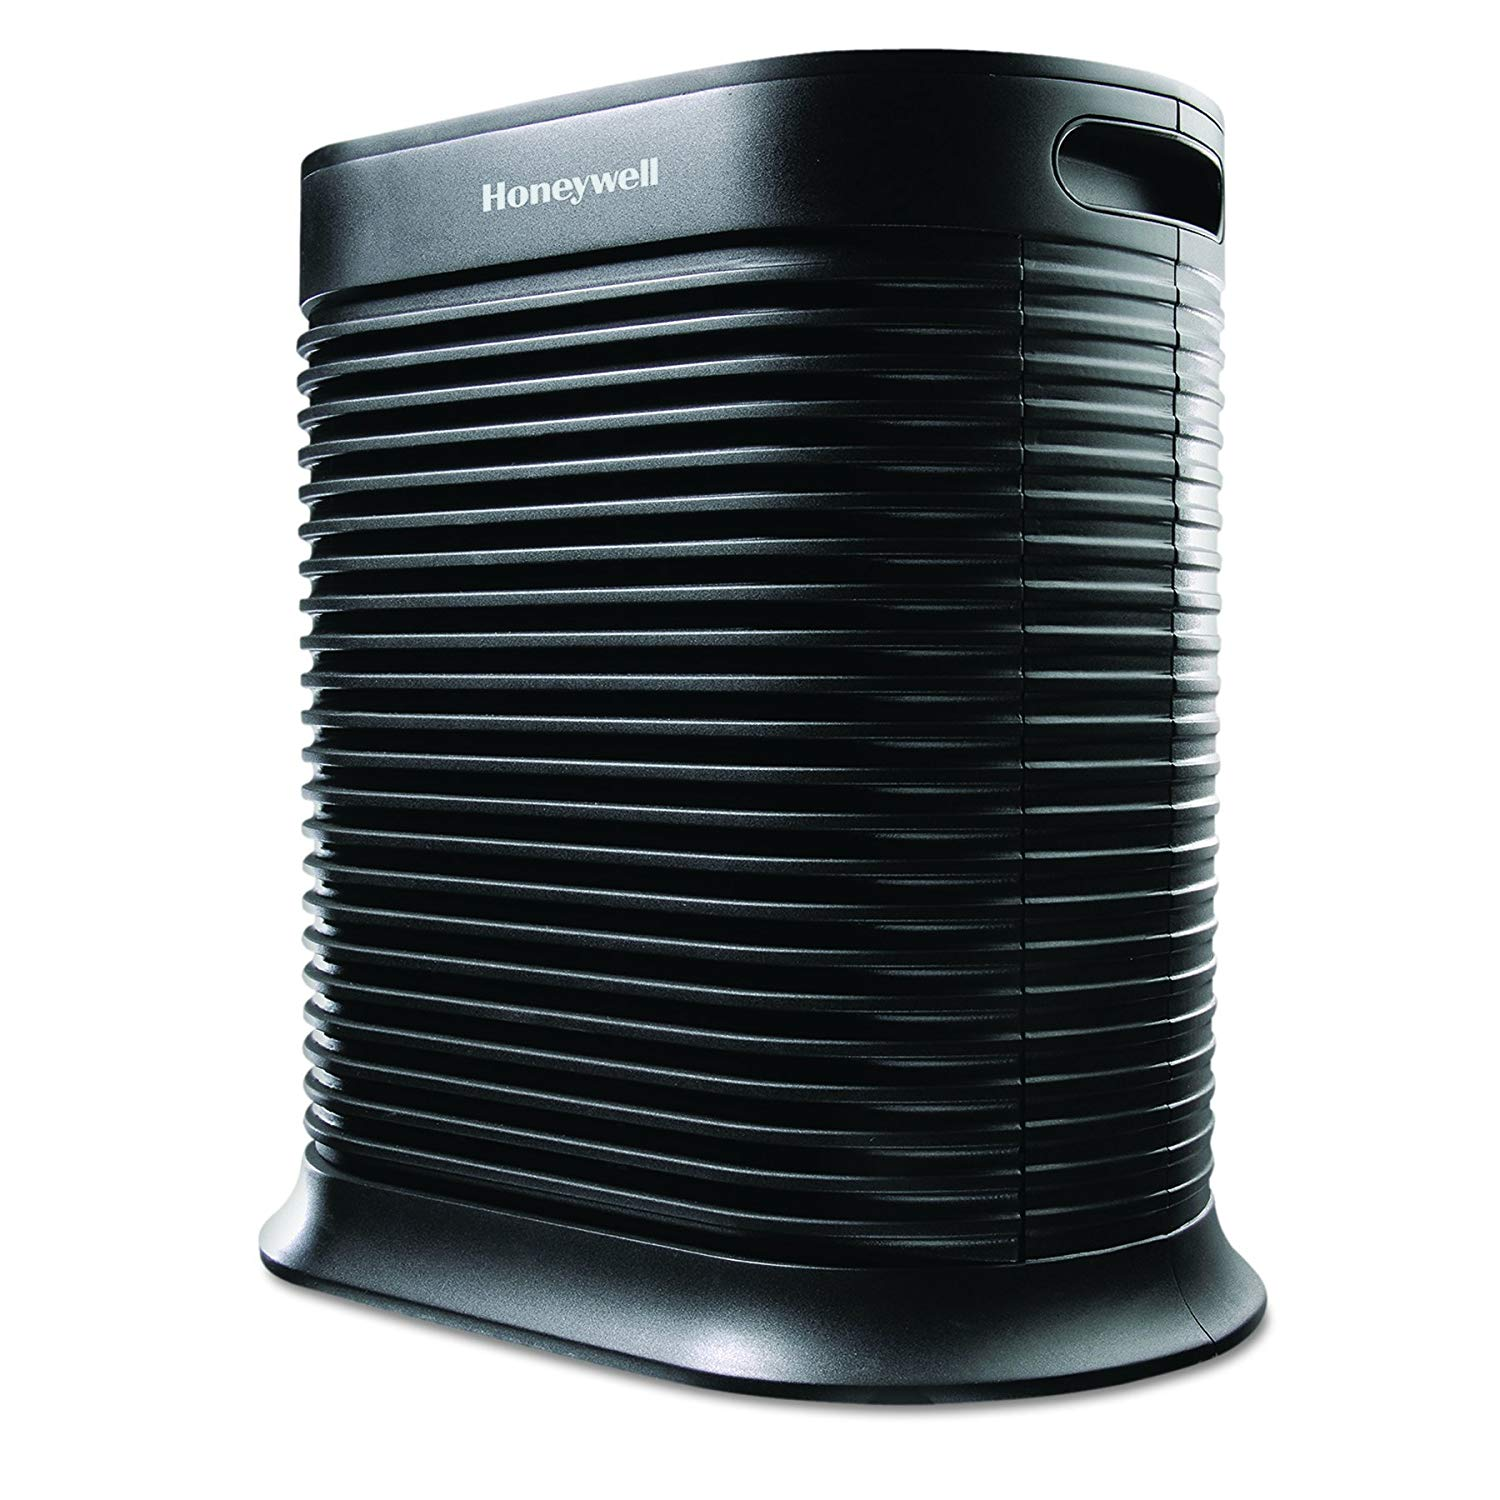 HPA300 honeywell air purifier